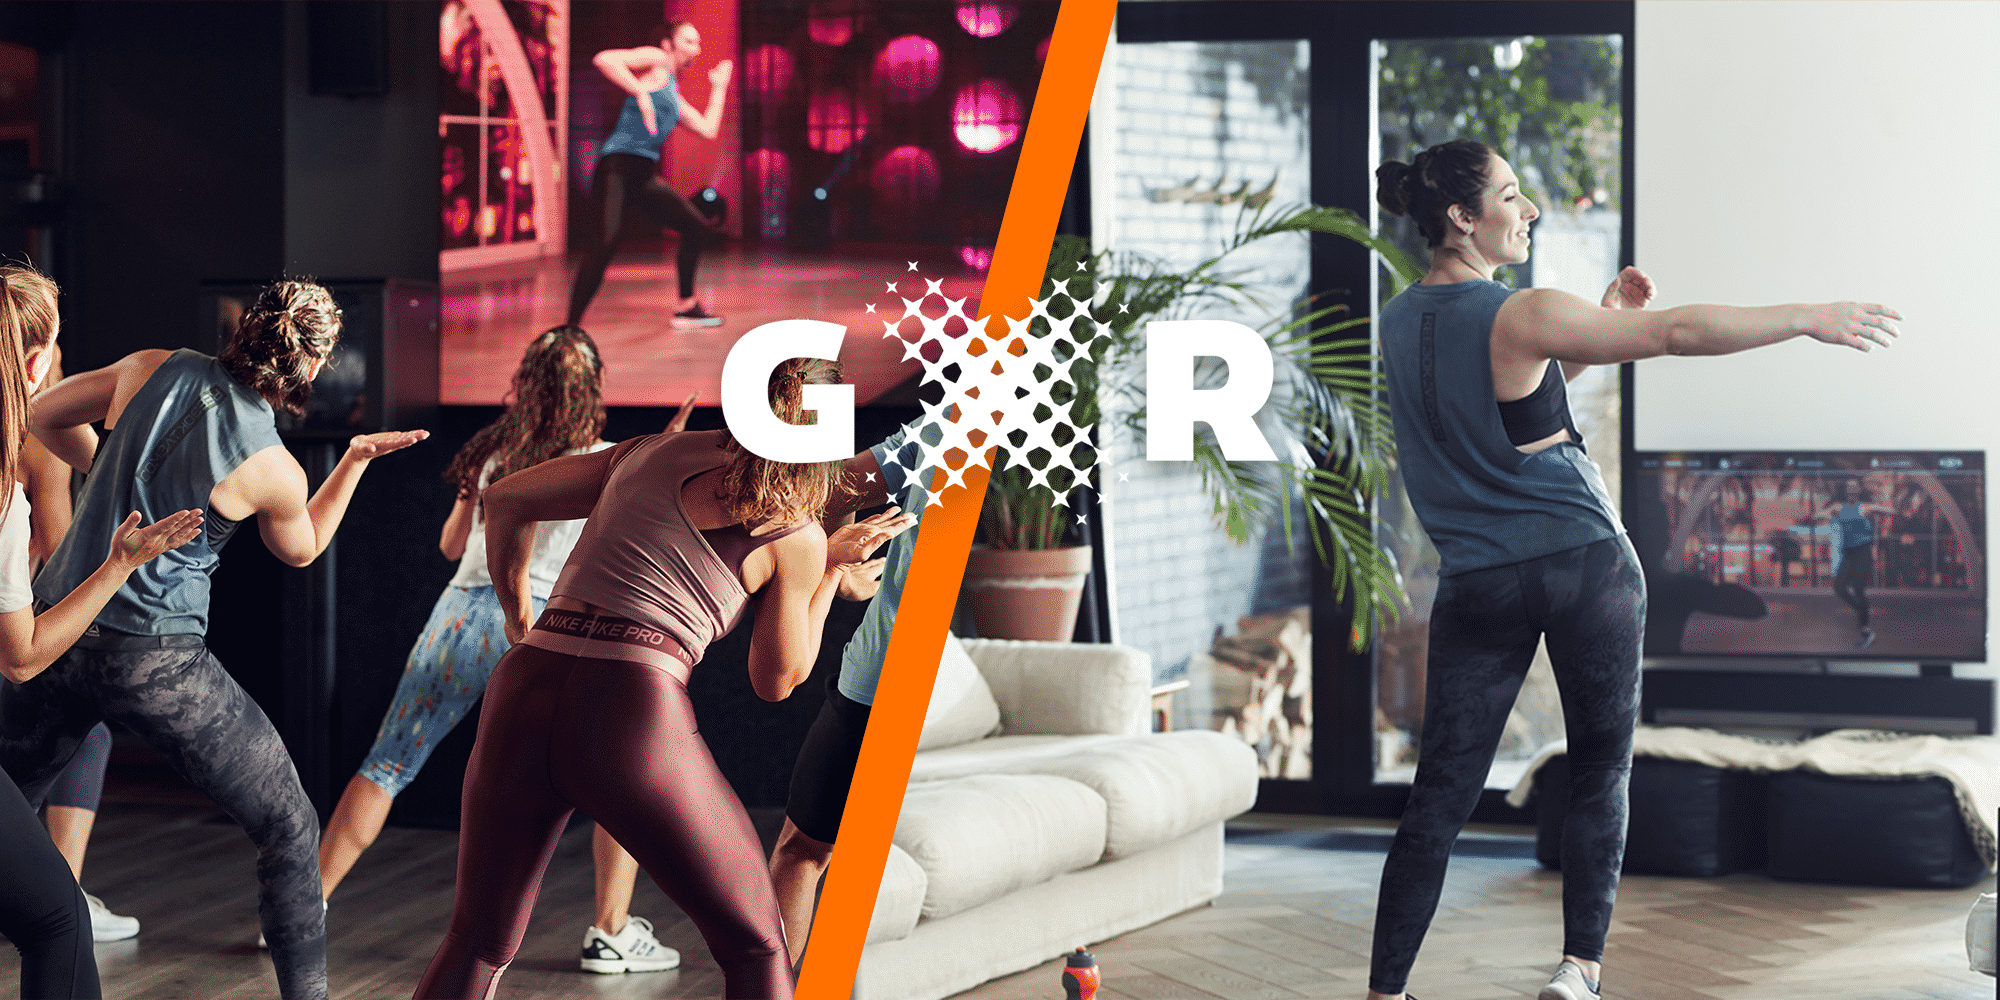 Basic-Fit's GXR: Live and on demand fitness classes